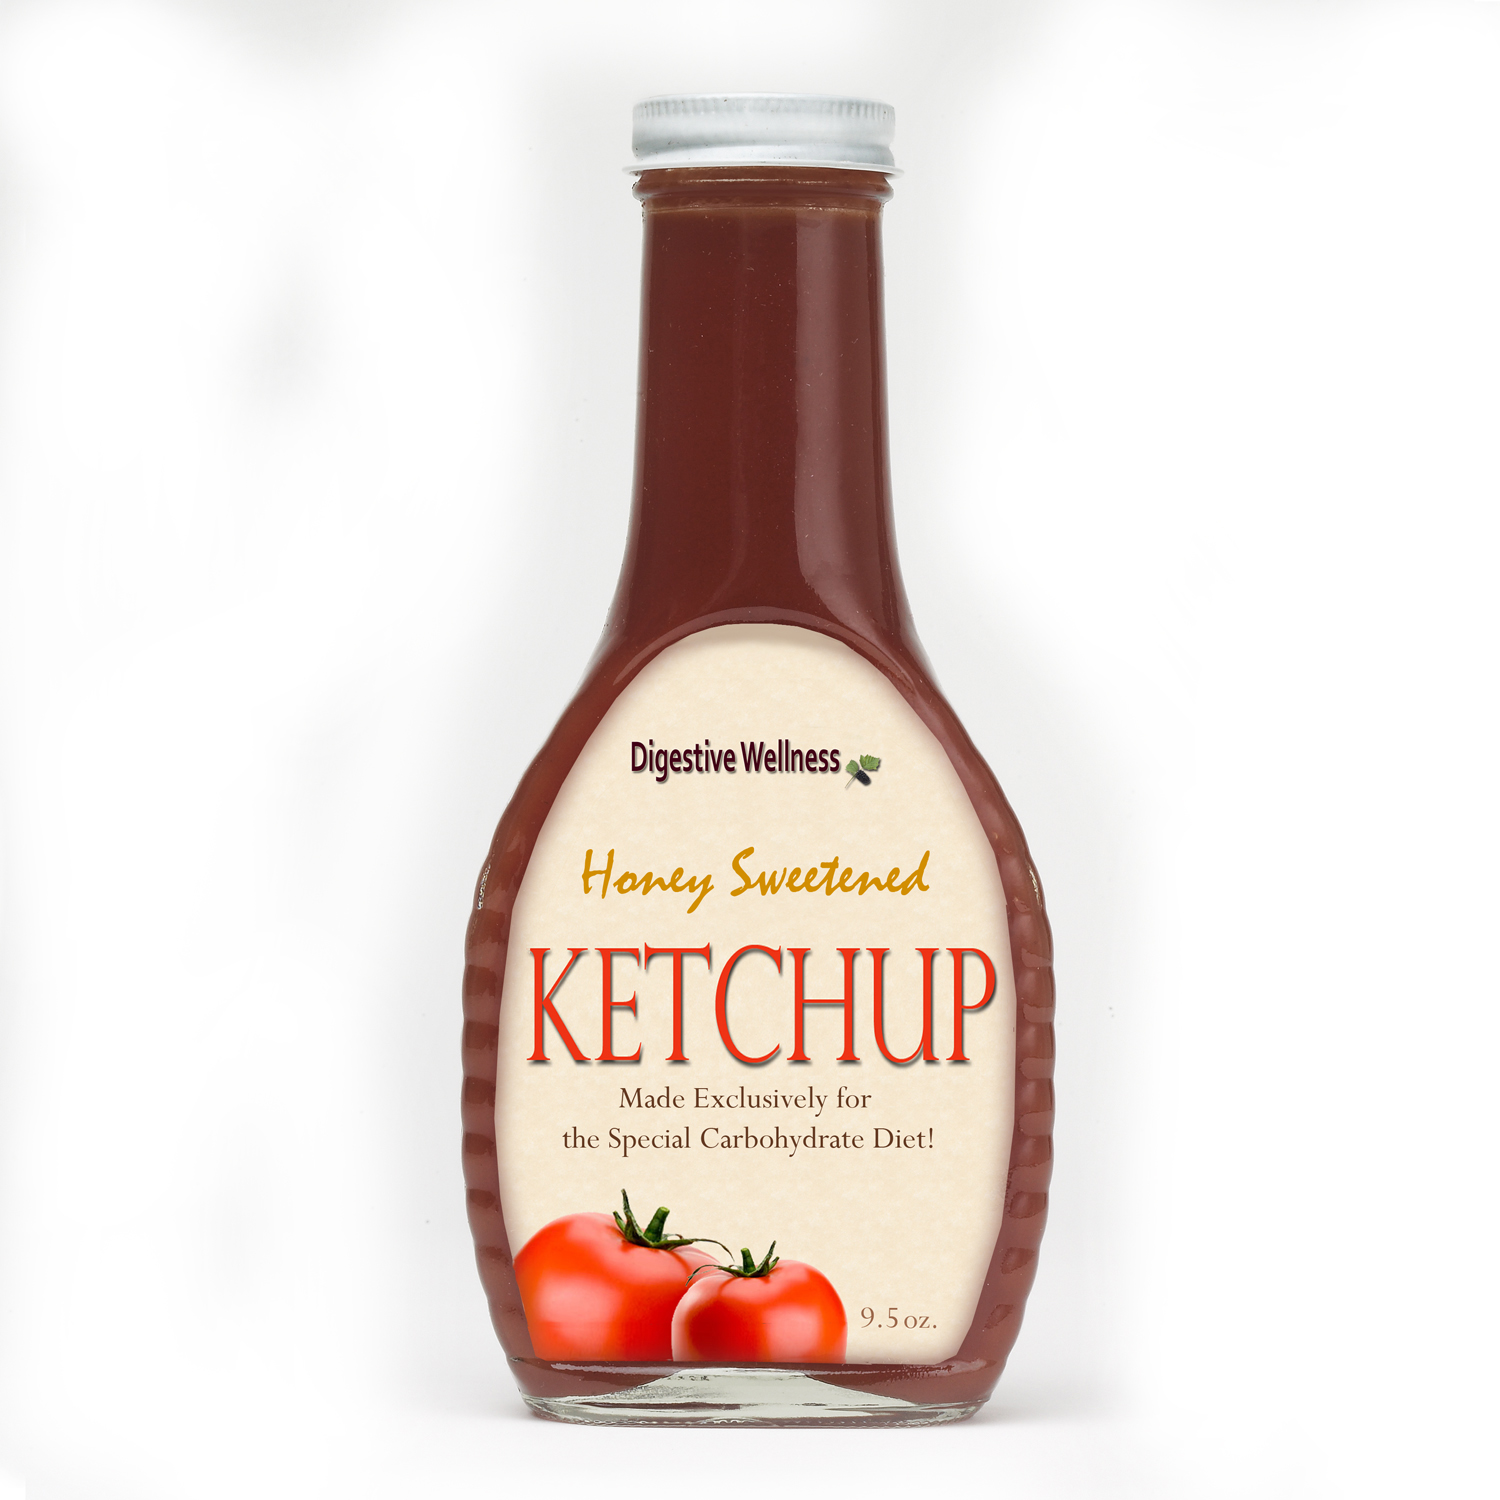 Specific Carbohydrate Diet: Win Three Bottles Ketchup!